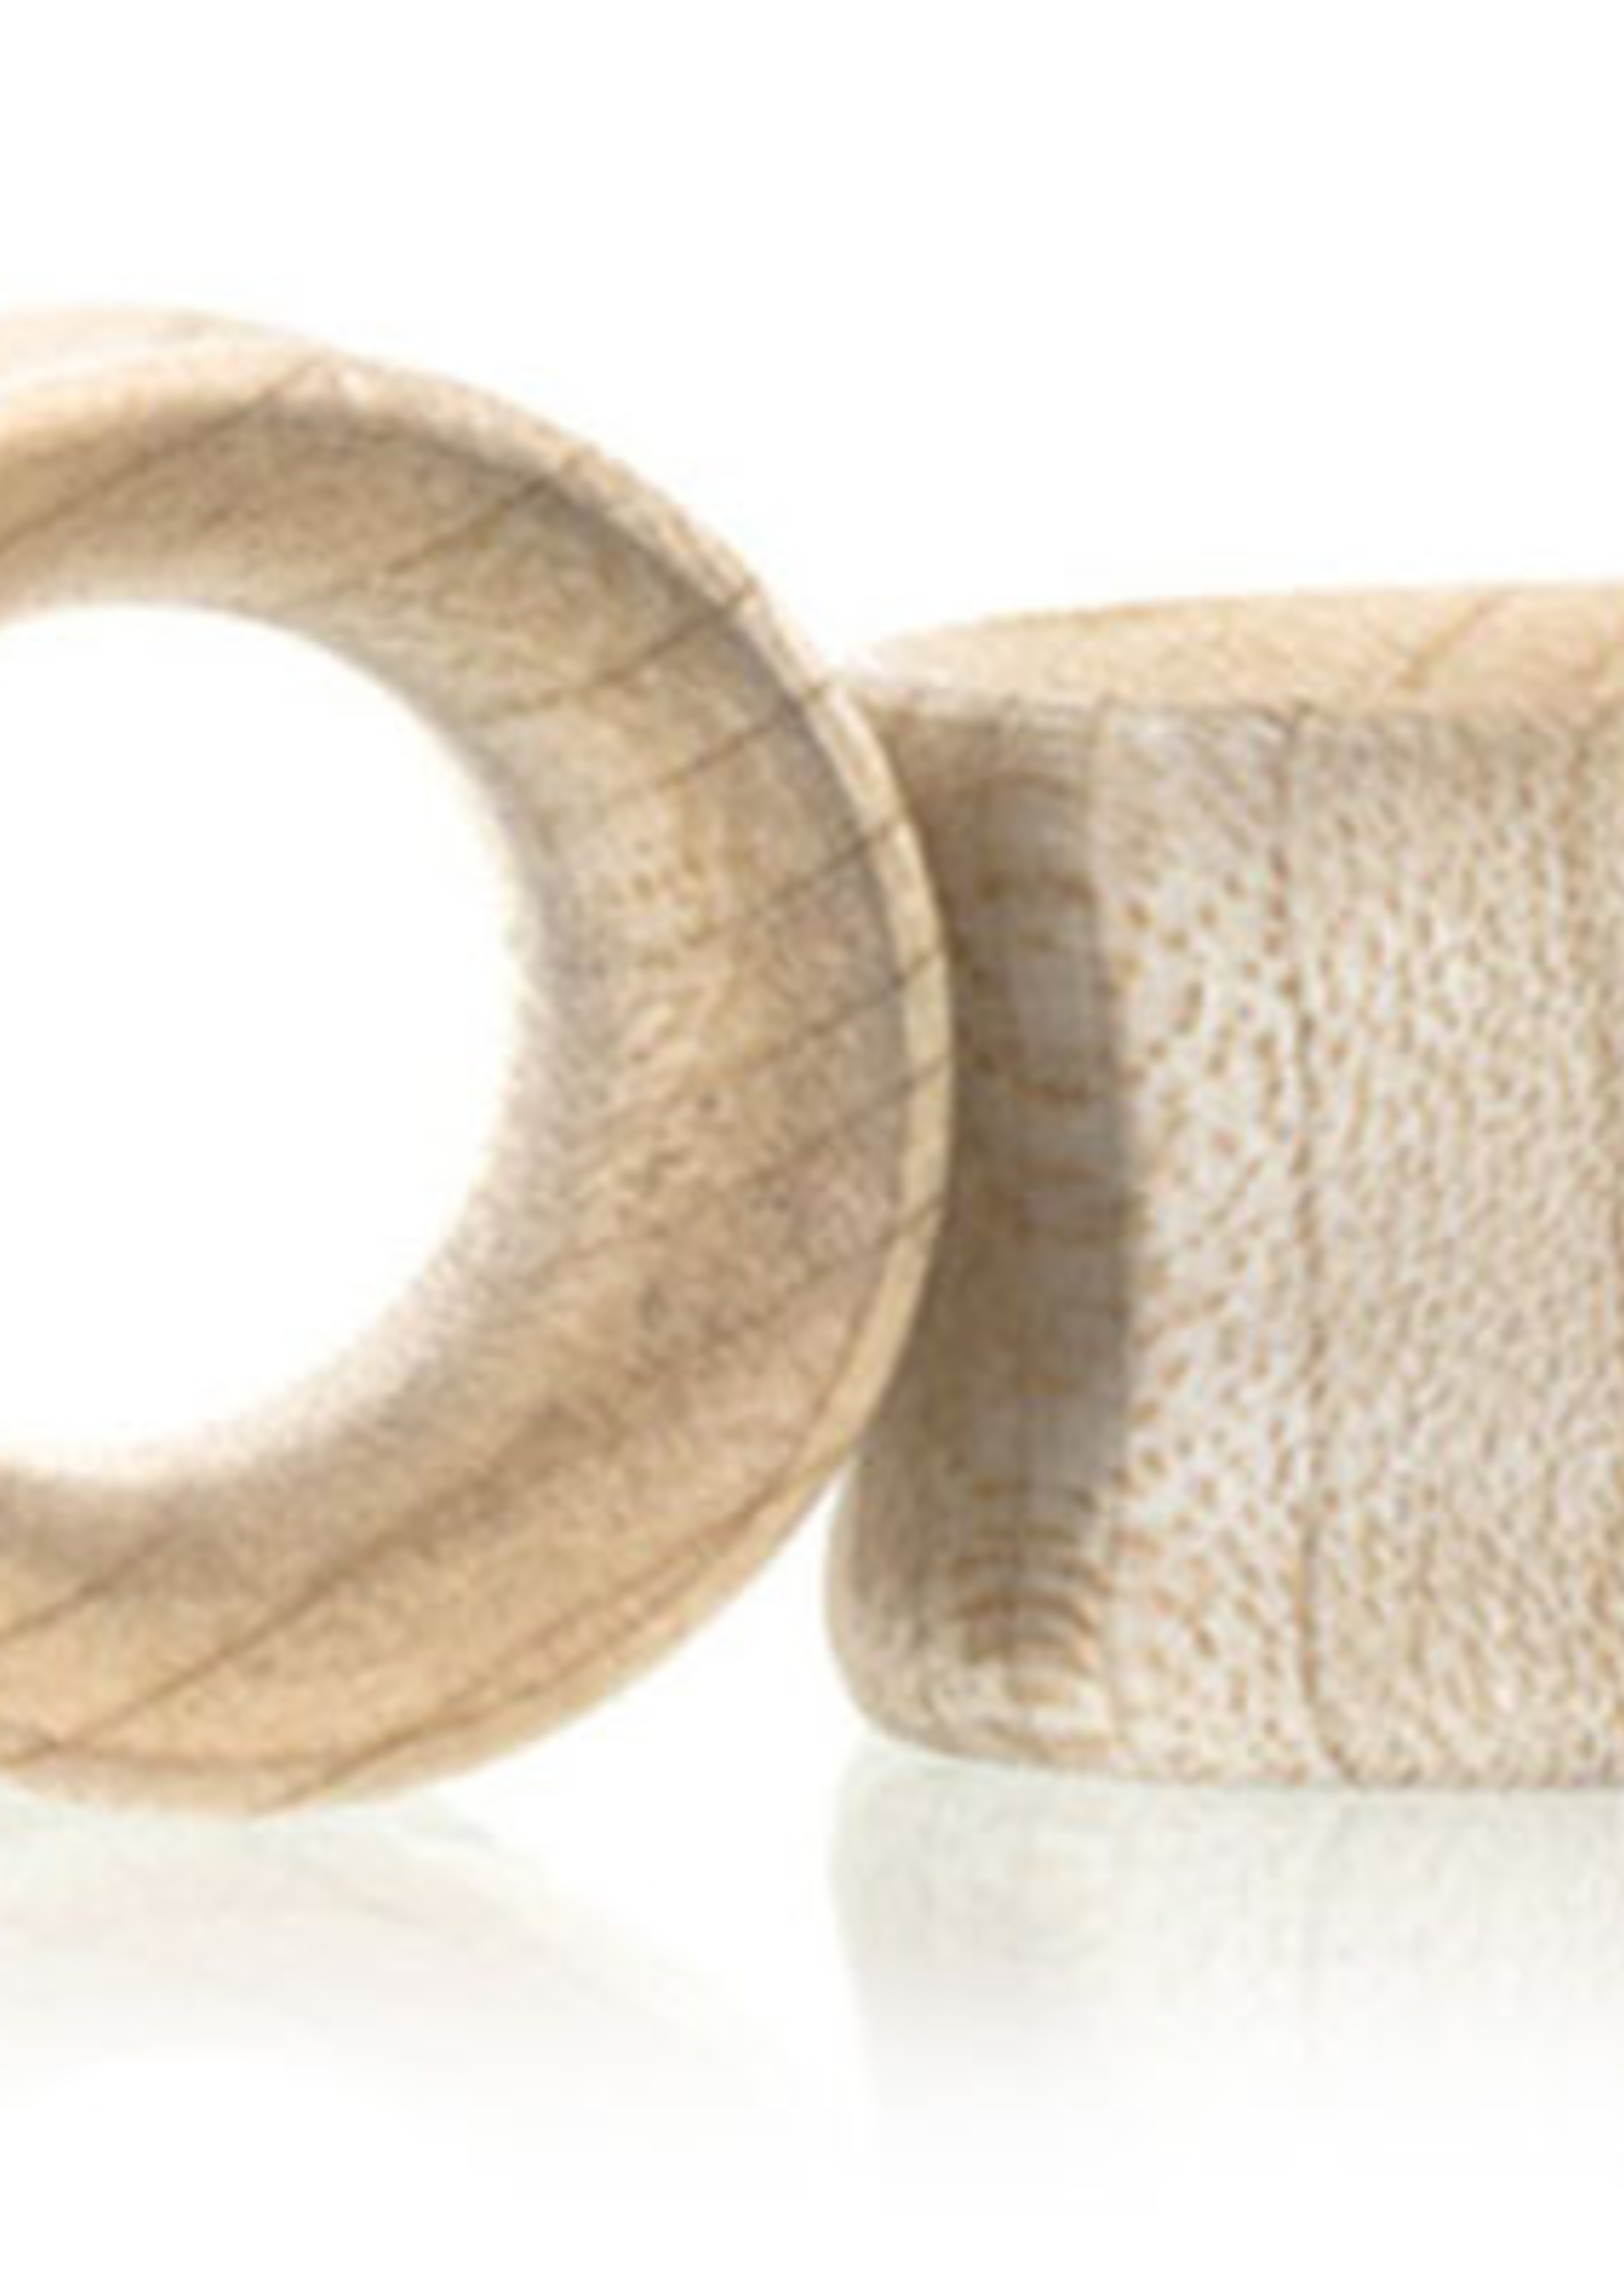 2g Light Wood Eyelets